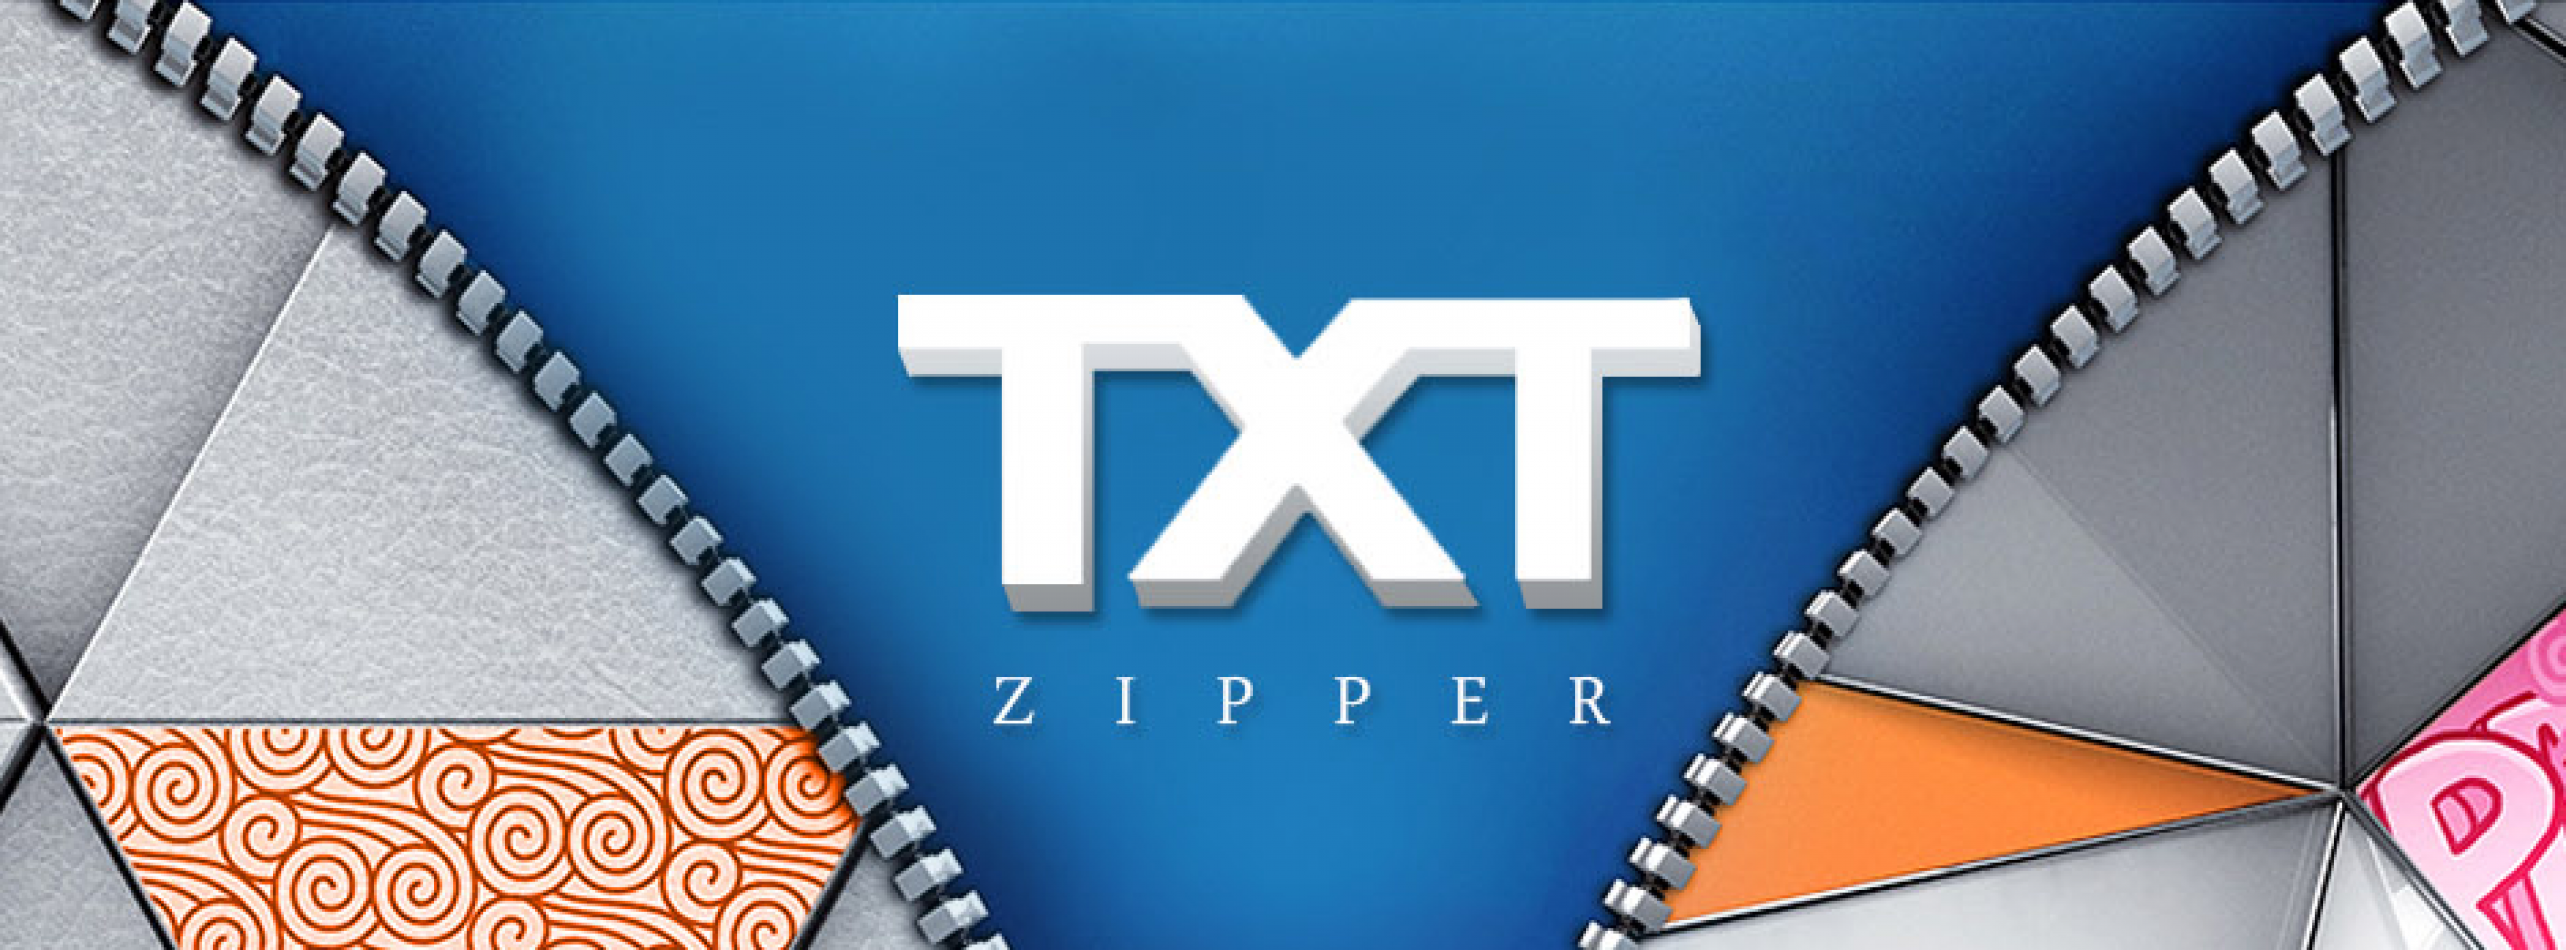 WENZHOU TXT ZIPPER CO., LTD.